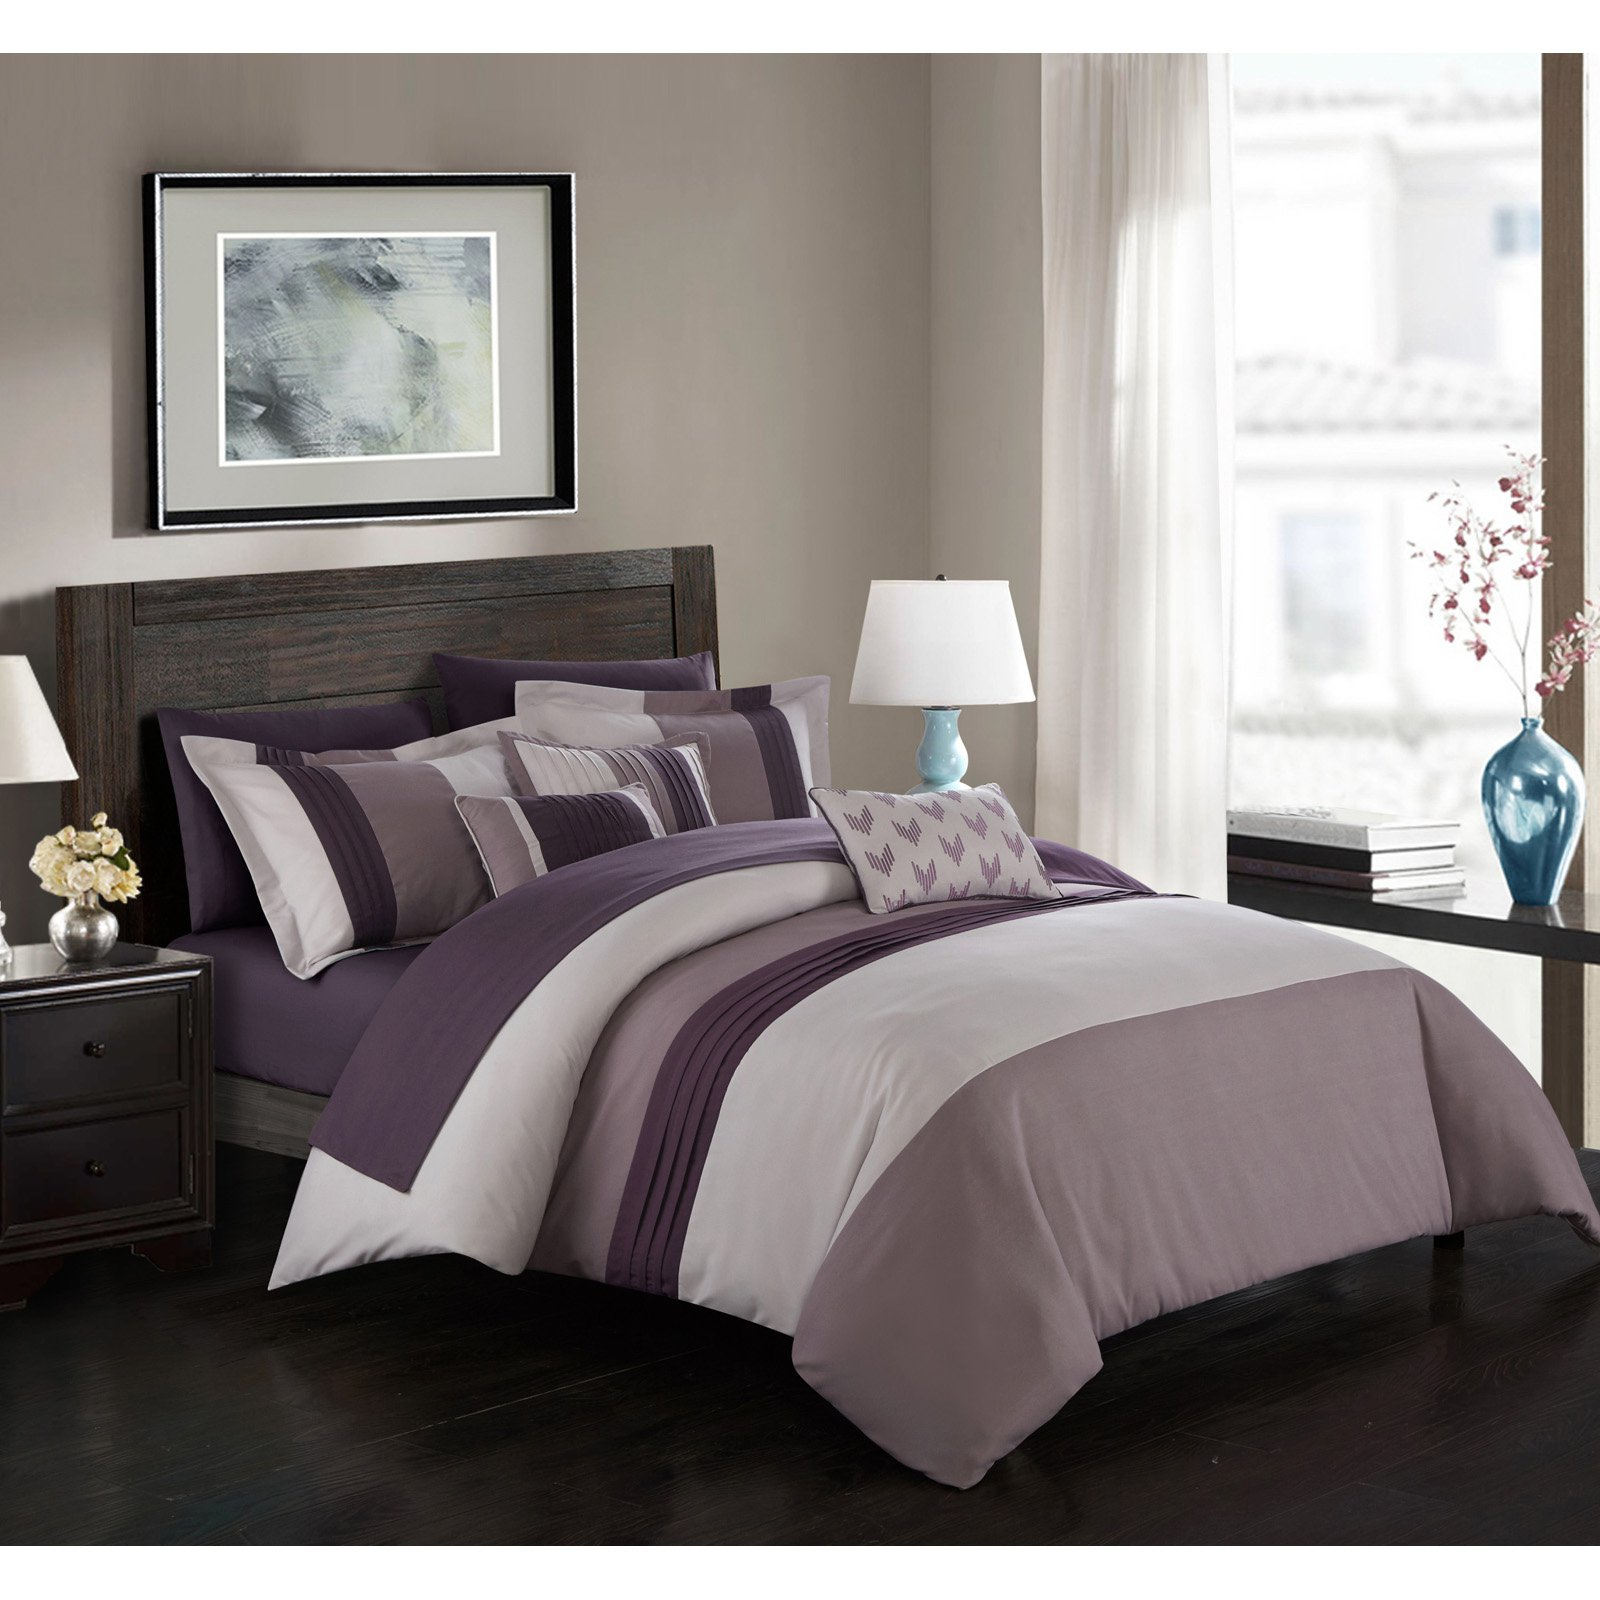 858161430b77 Hester Bed in a Bag by Chic Home Plum. Hester Bed in a Bag by Chic Home  Plum Contemporary Dresses, Modern Comforter Sets,